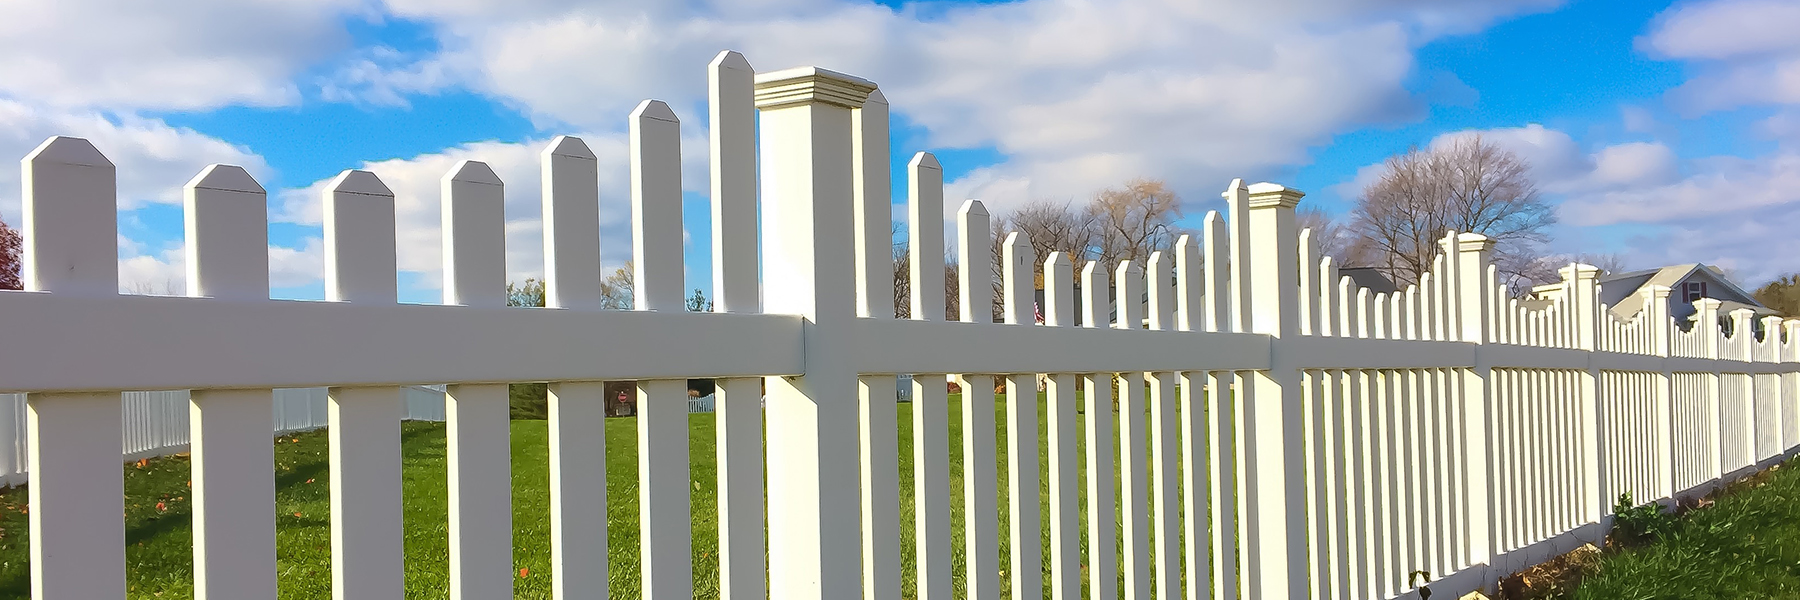 Myrtle Beach Fence Photos